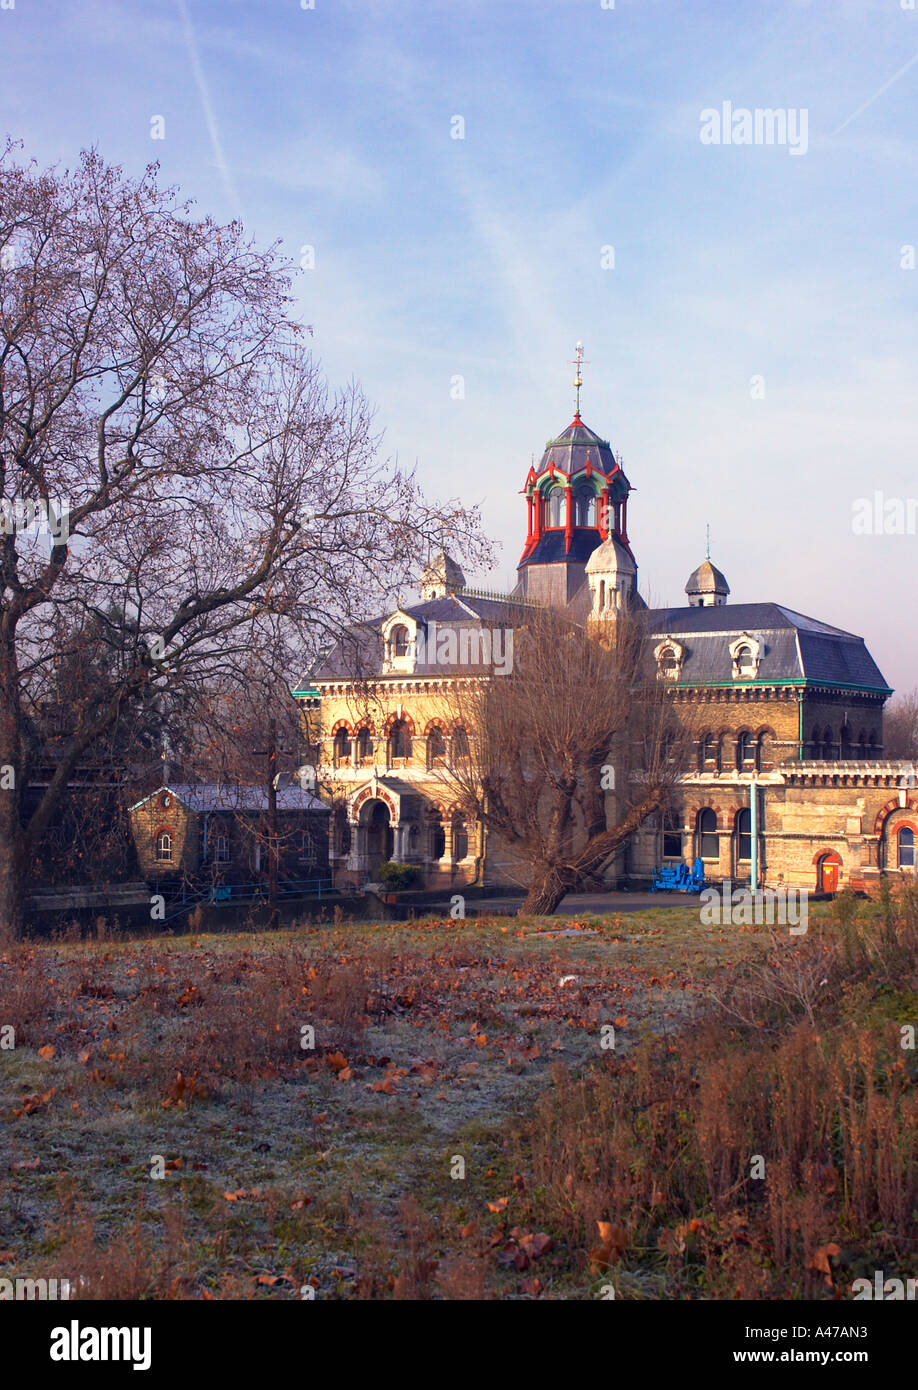 The disused Victorian Abbey Mills Sewage Pumping Station in Stratford in winter - Stock Image